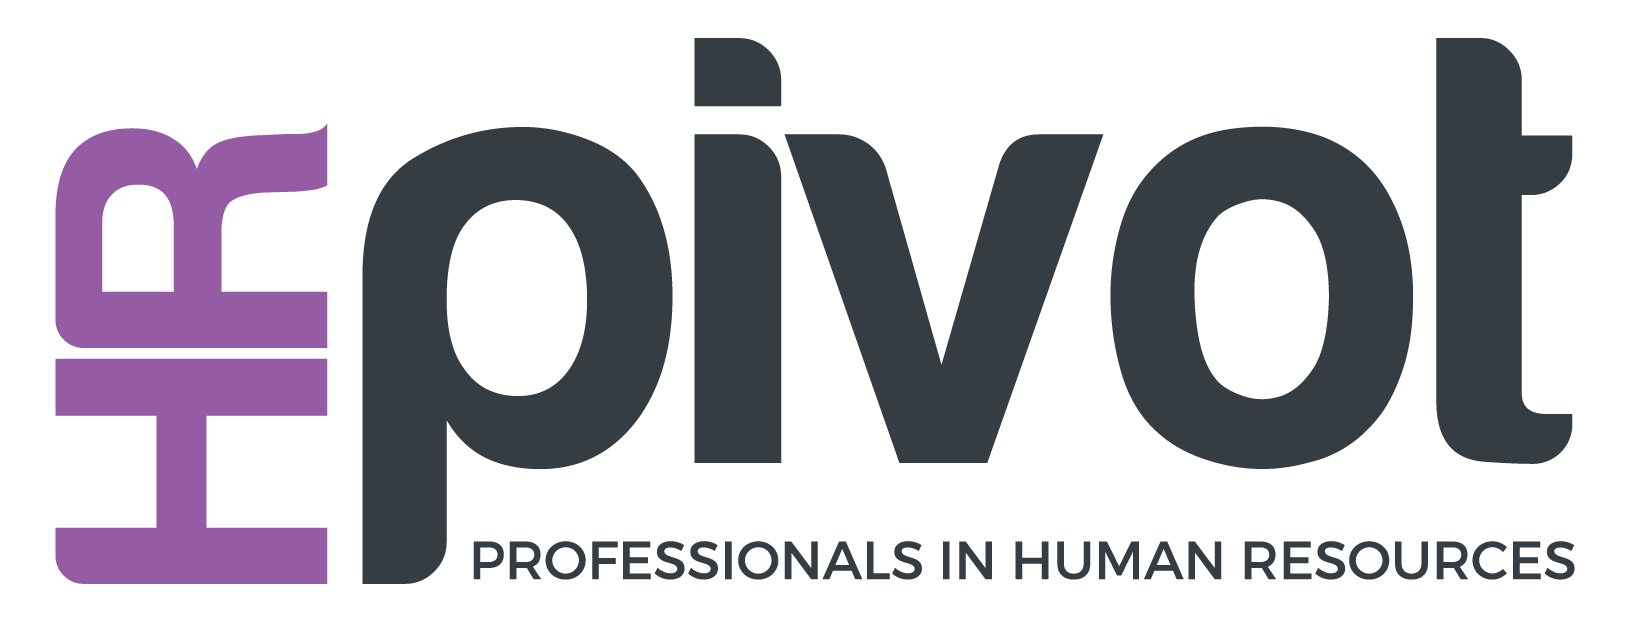 Technical Support Specialist job in Tempe - HRPivot